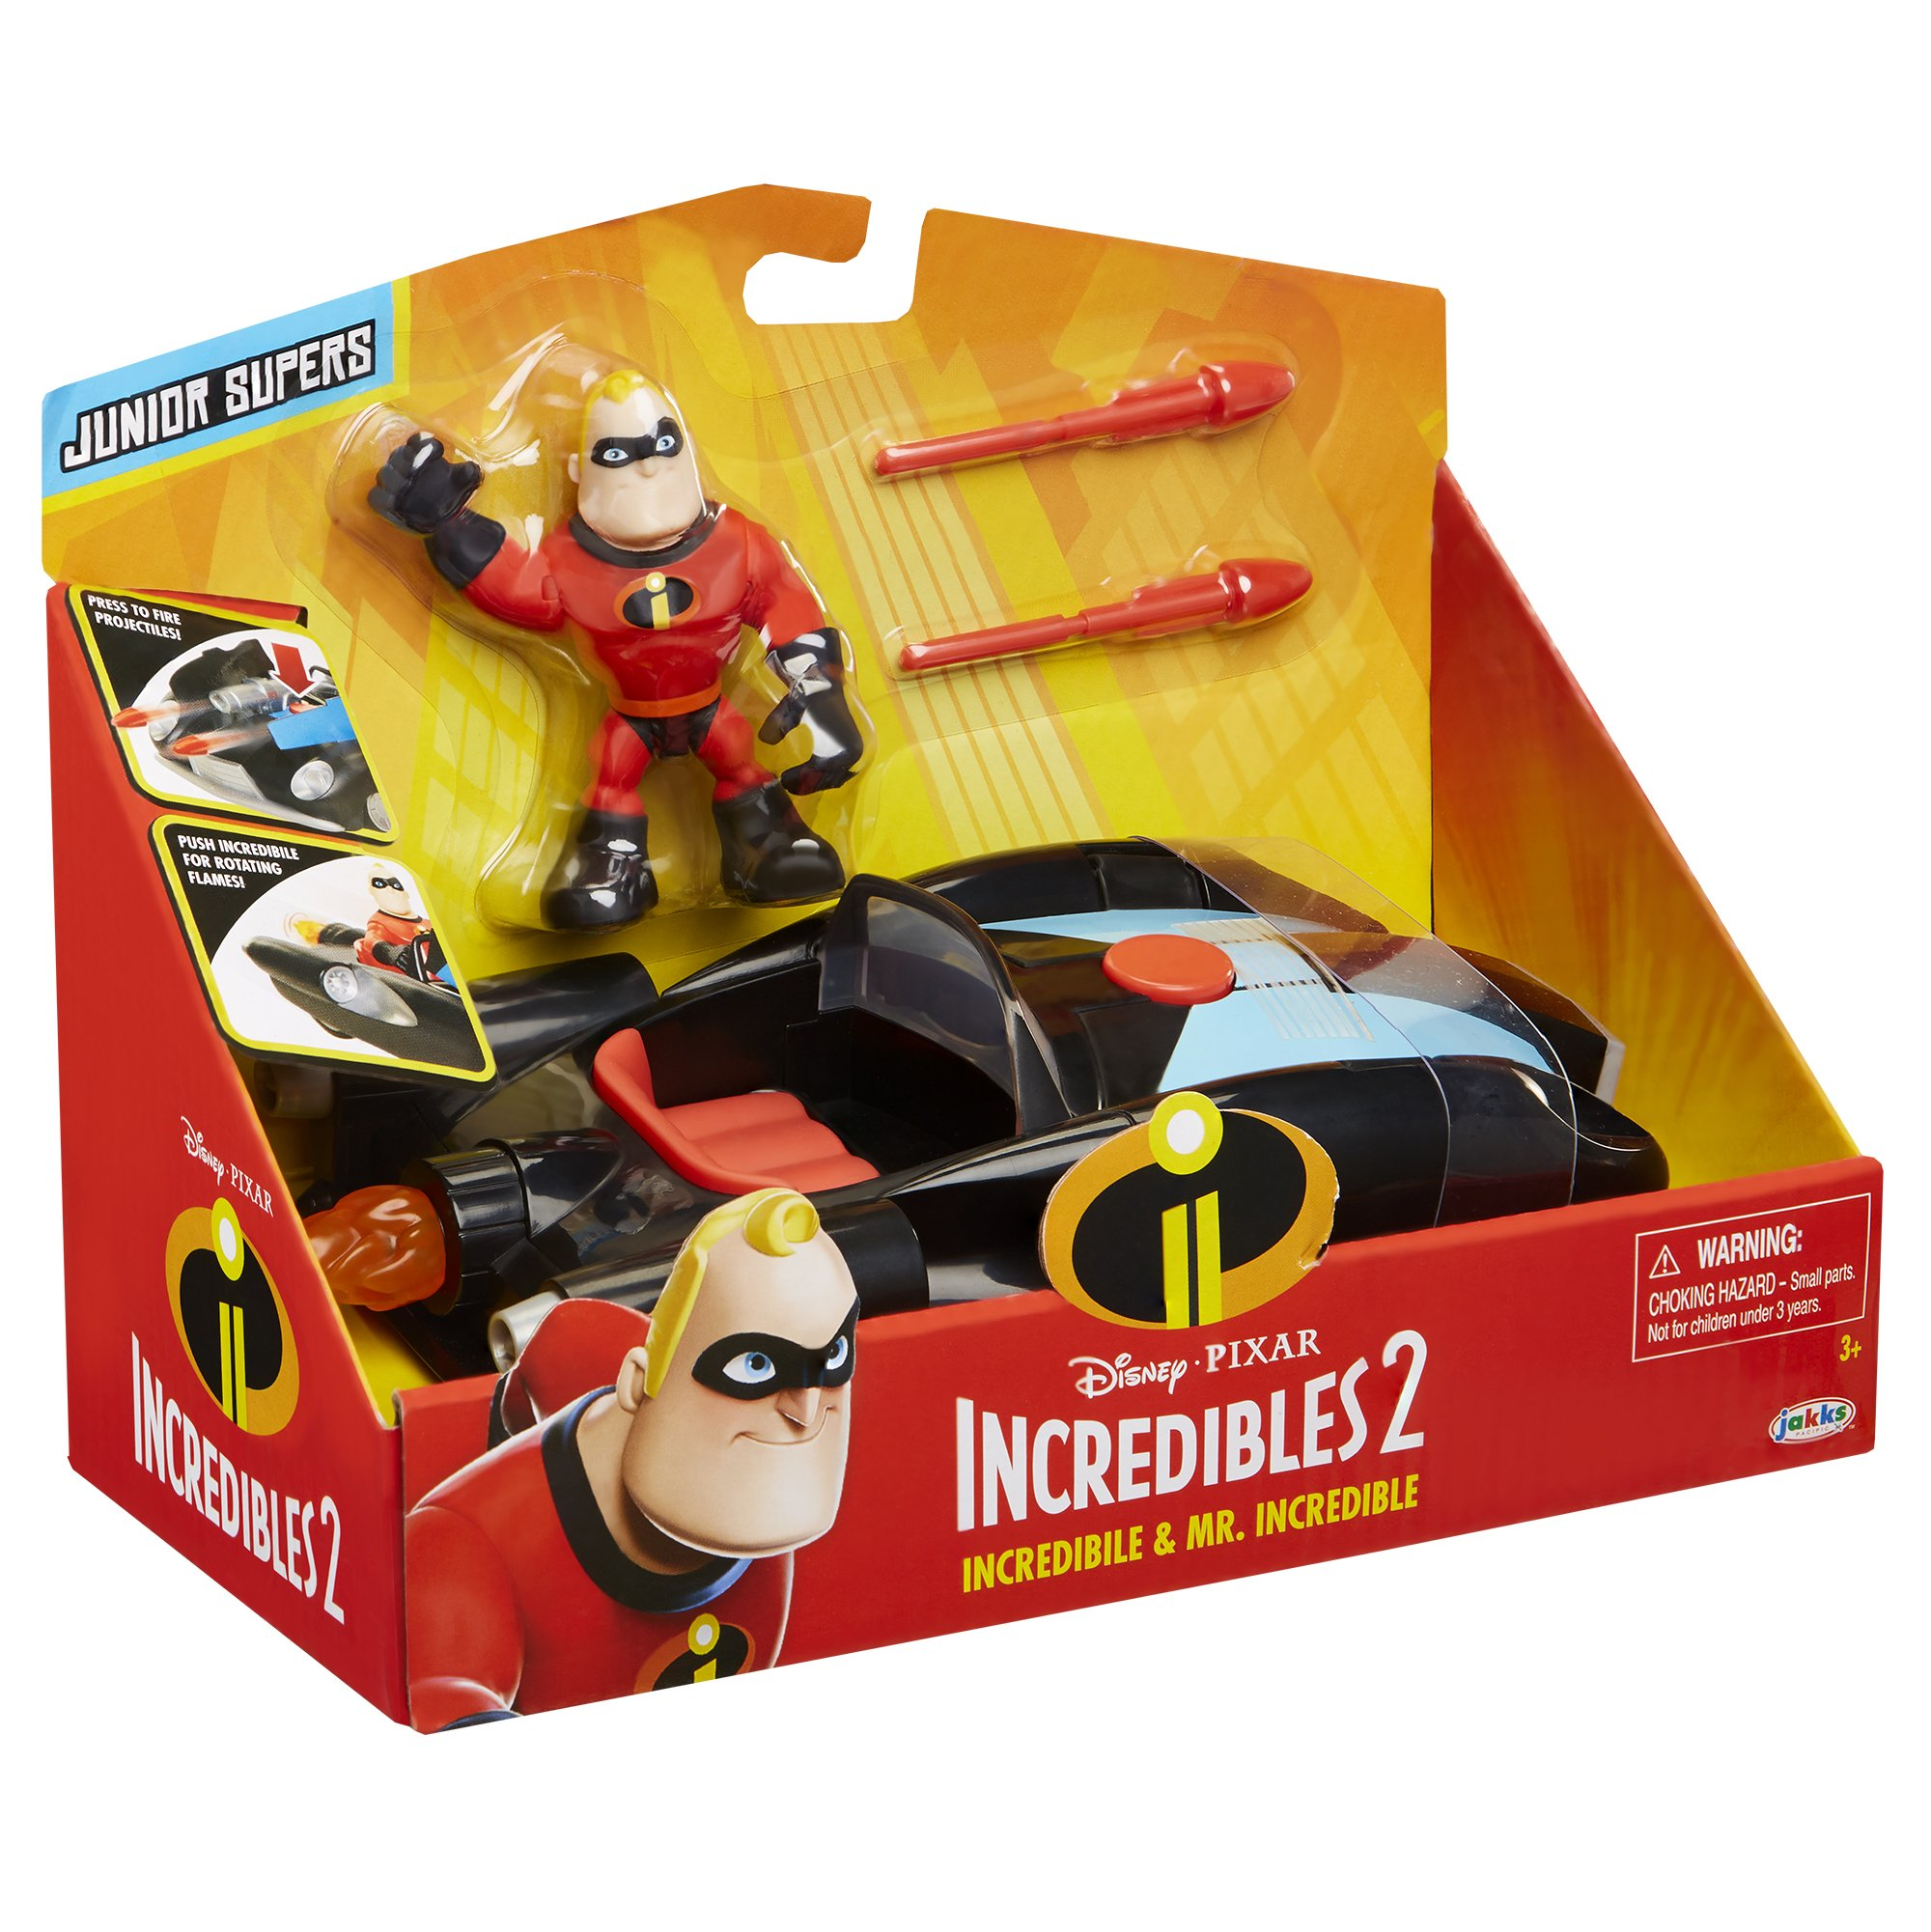 The Incredibles 2 Incredibile Car & Mr. Incredible Action Figure 2-Piece Set, Black Car and Red Mr. Incredible Figure, Medium by The Incredibles 2 (Image #5)